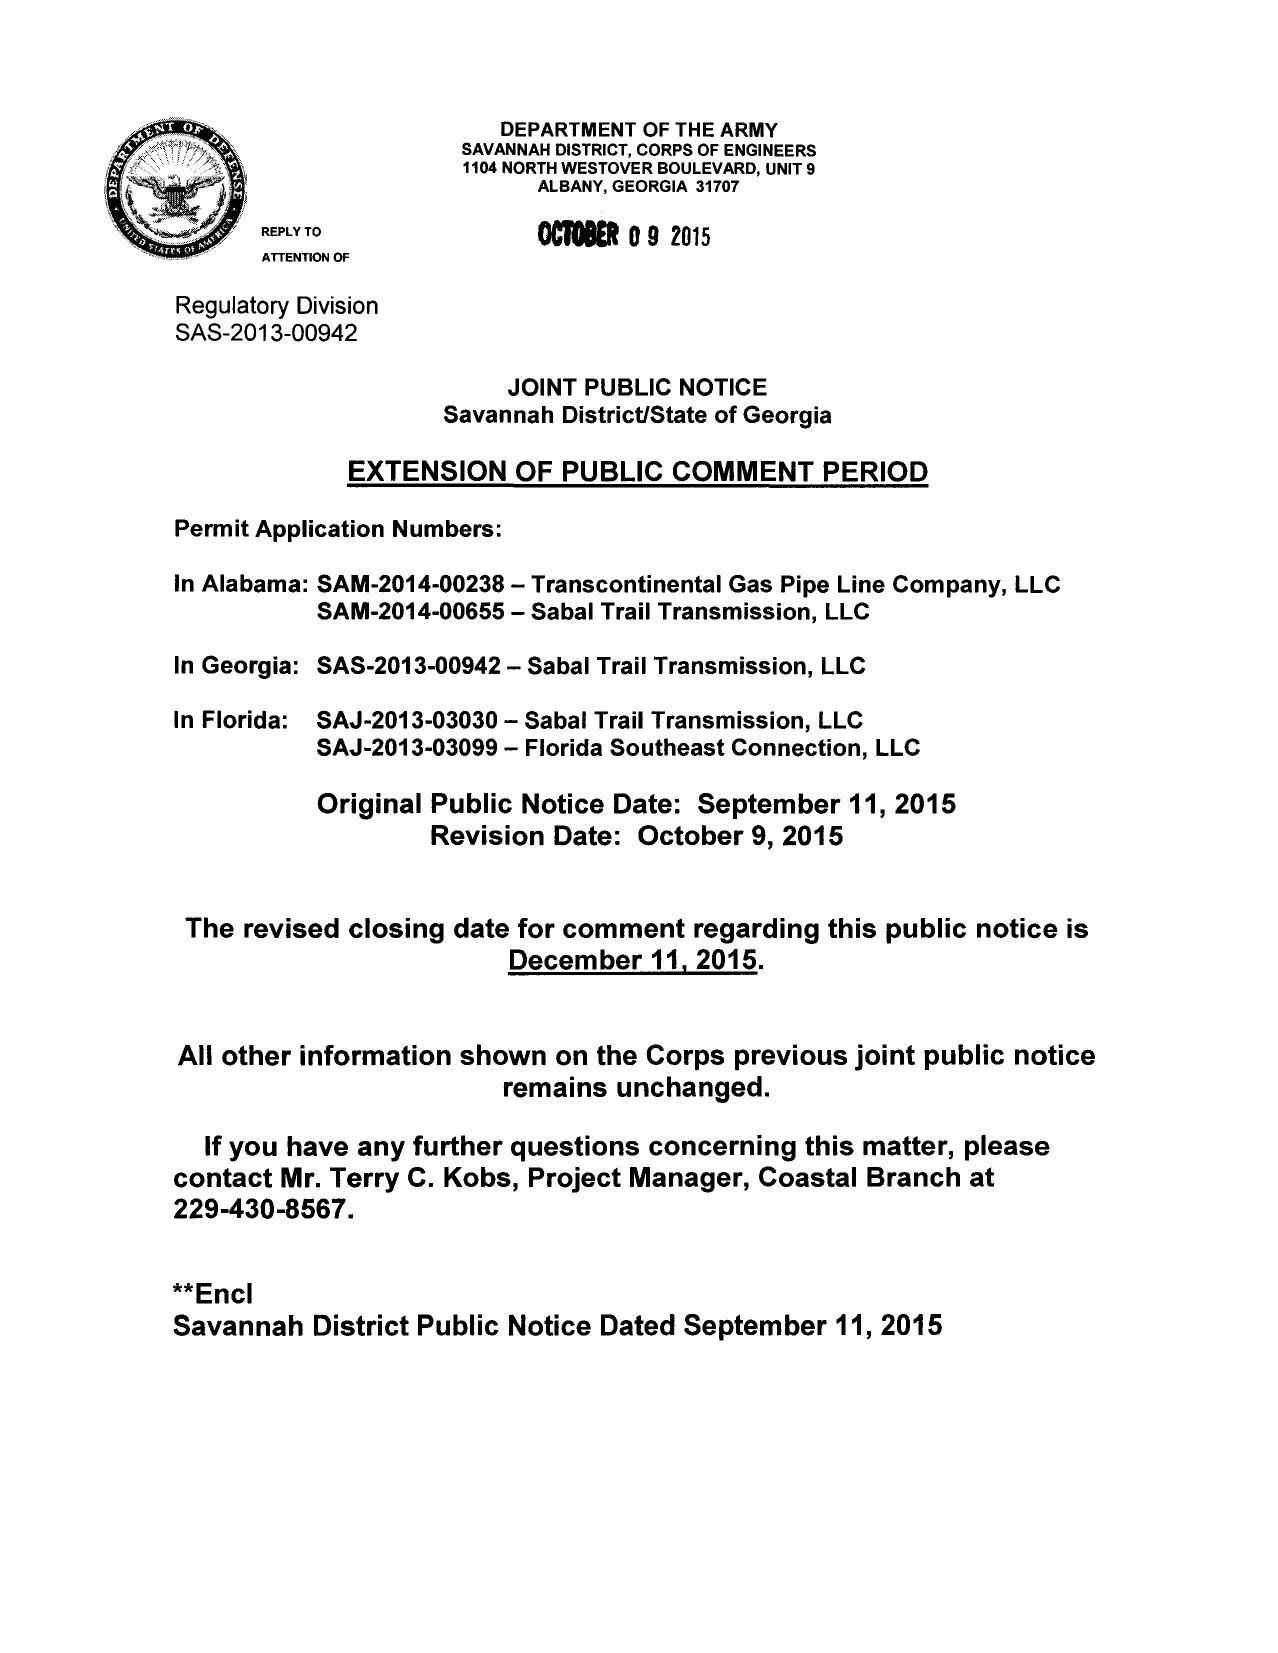 1278x1653 Until 11 Dec 2015, in 60-day extension to comment about Sabal Trail pipeline, by U.S. Army Corps of Engineers , 9 October 2015